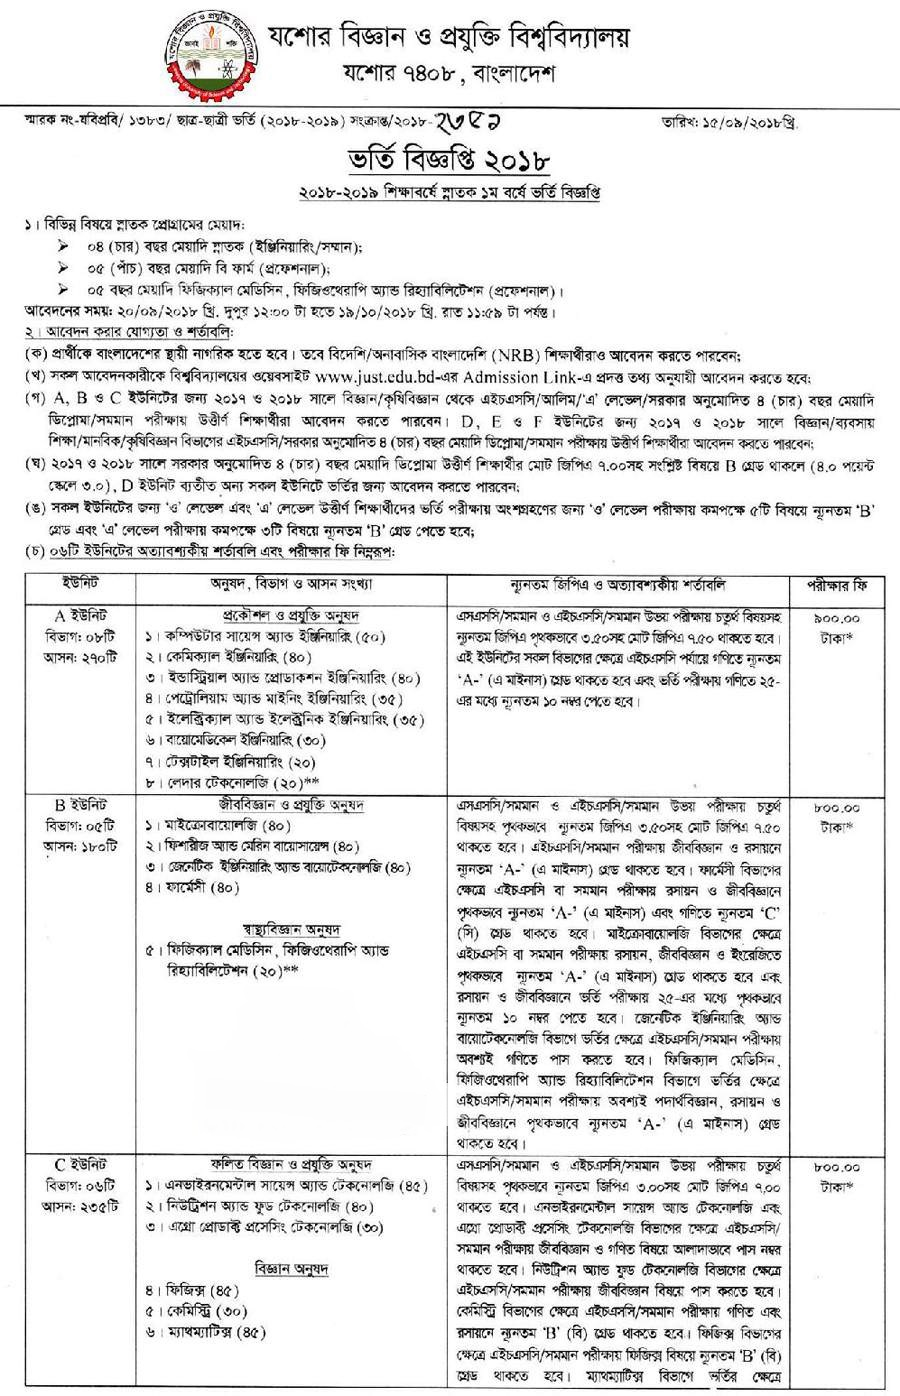 JUST Admission Test Circular Notice Result 2018-19 Session Download